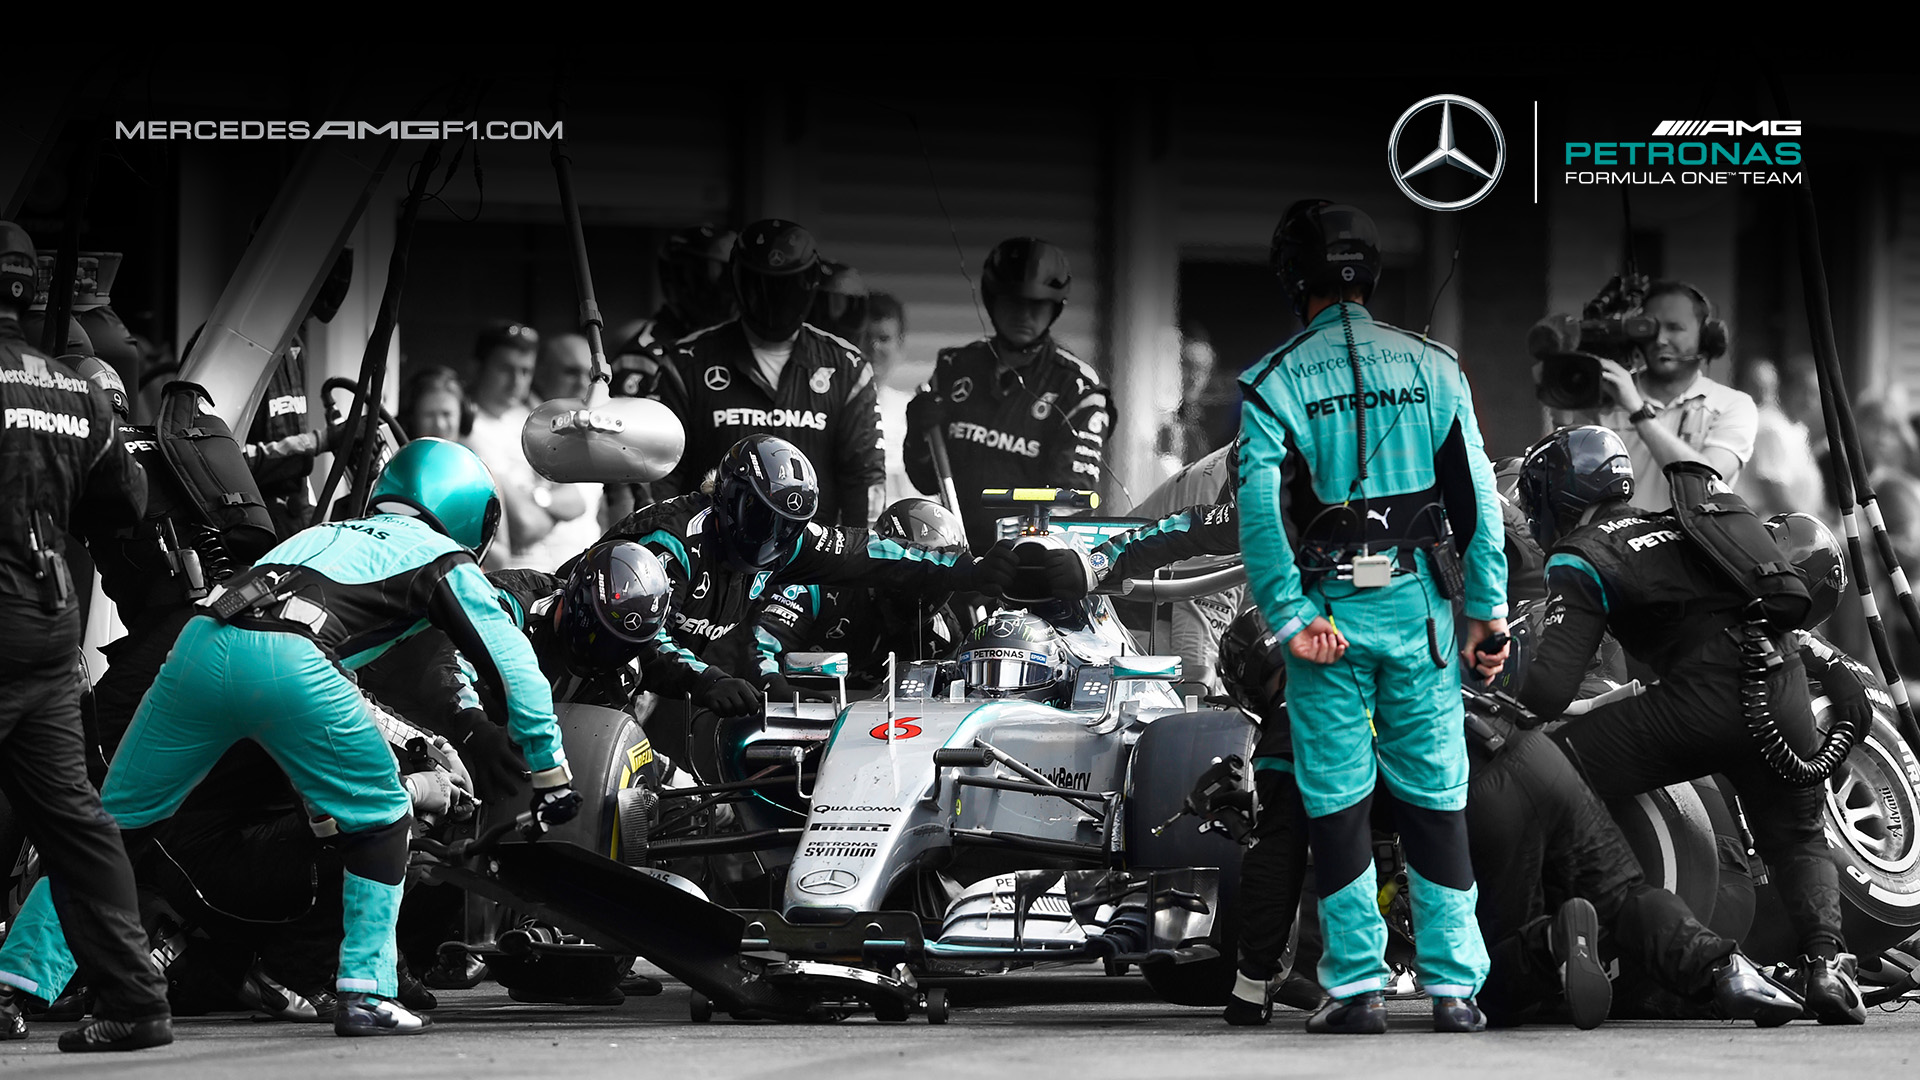 Mercedes f1 amg wallpaper